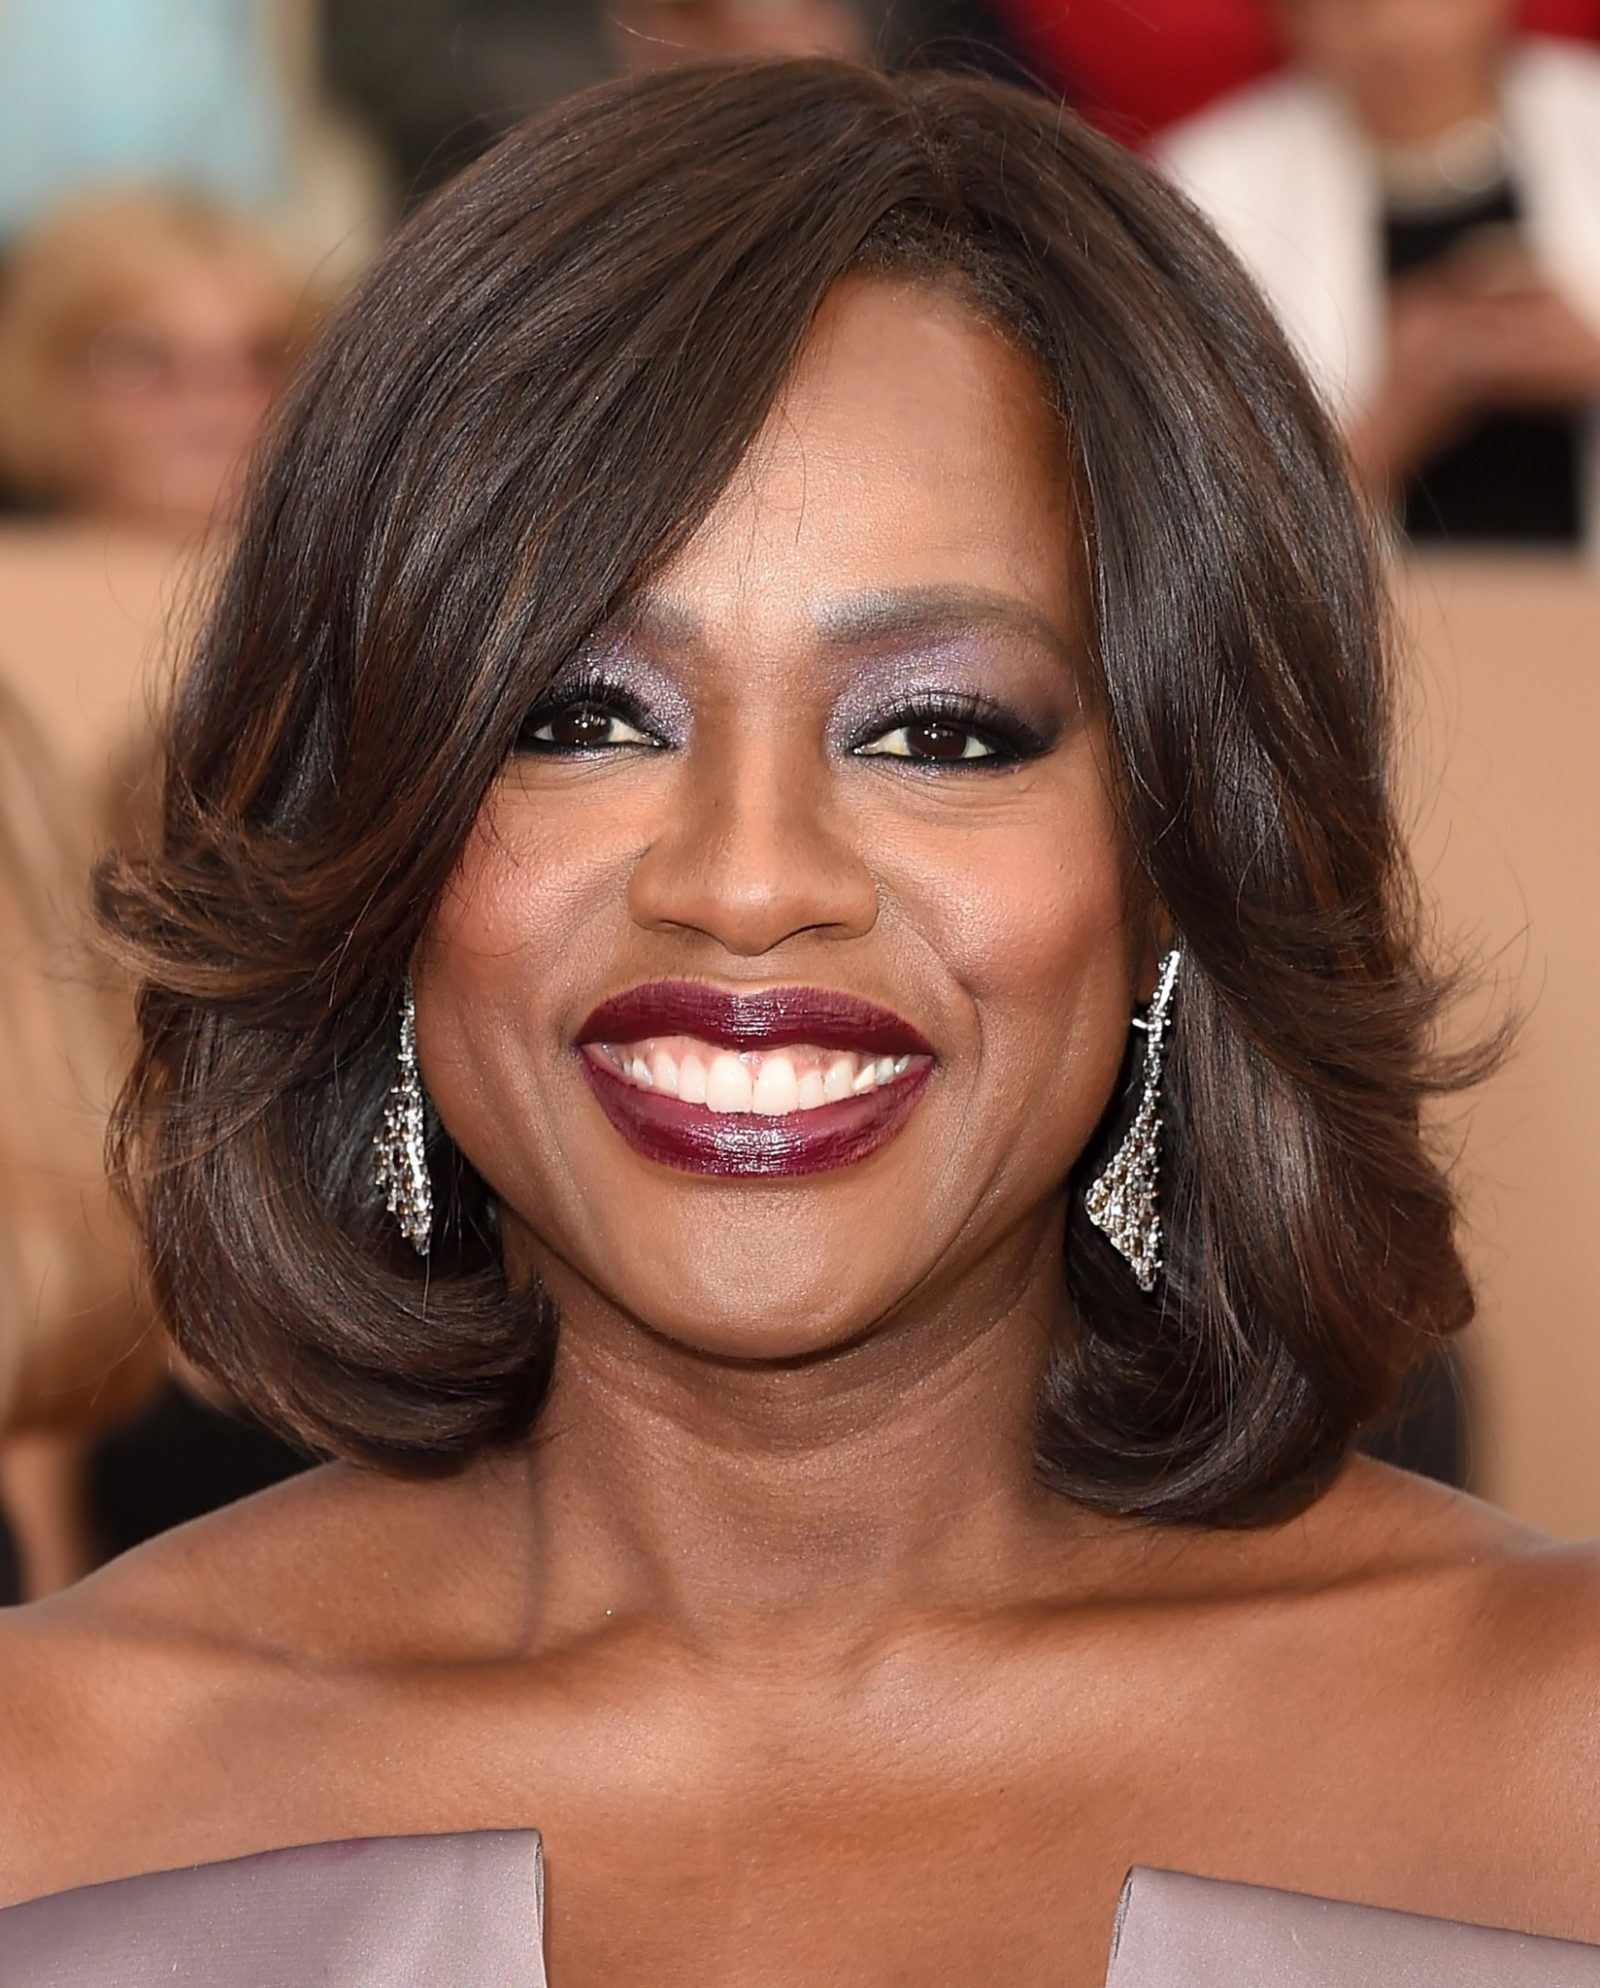 Make batom vinho Viola Davis SAG Awards